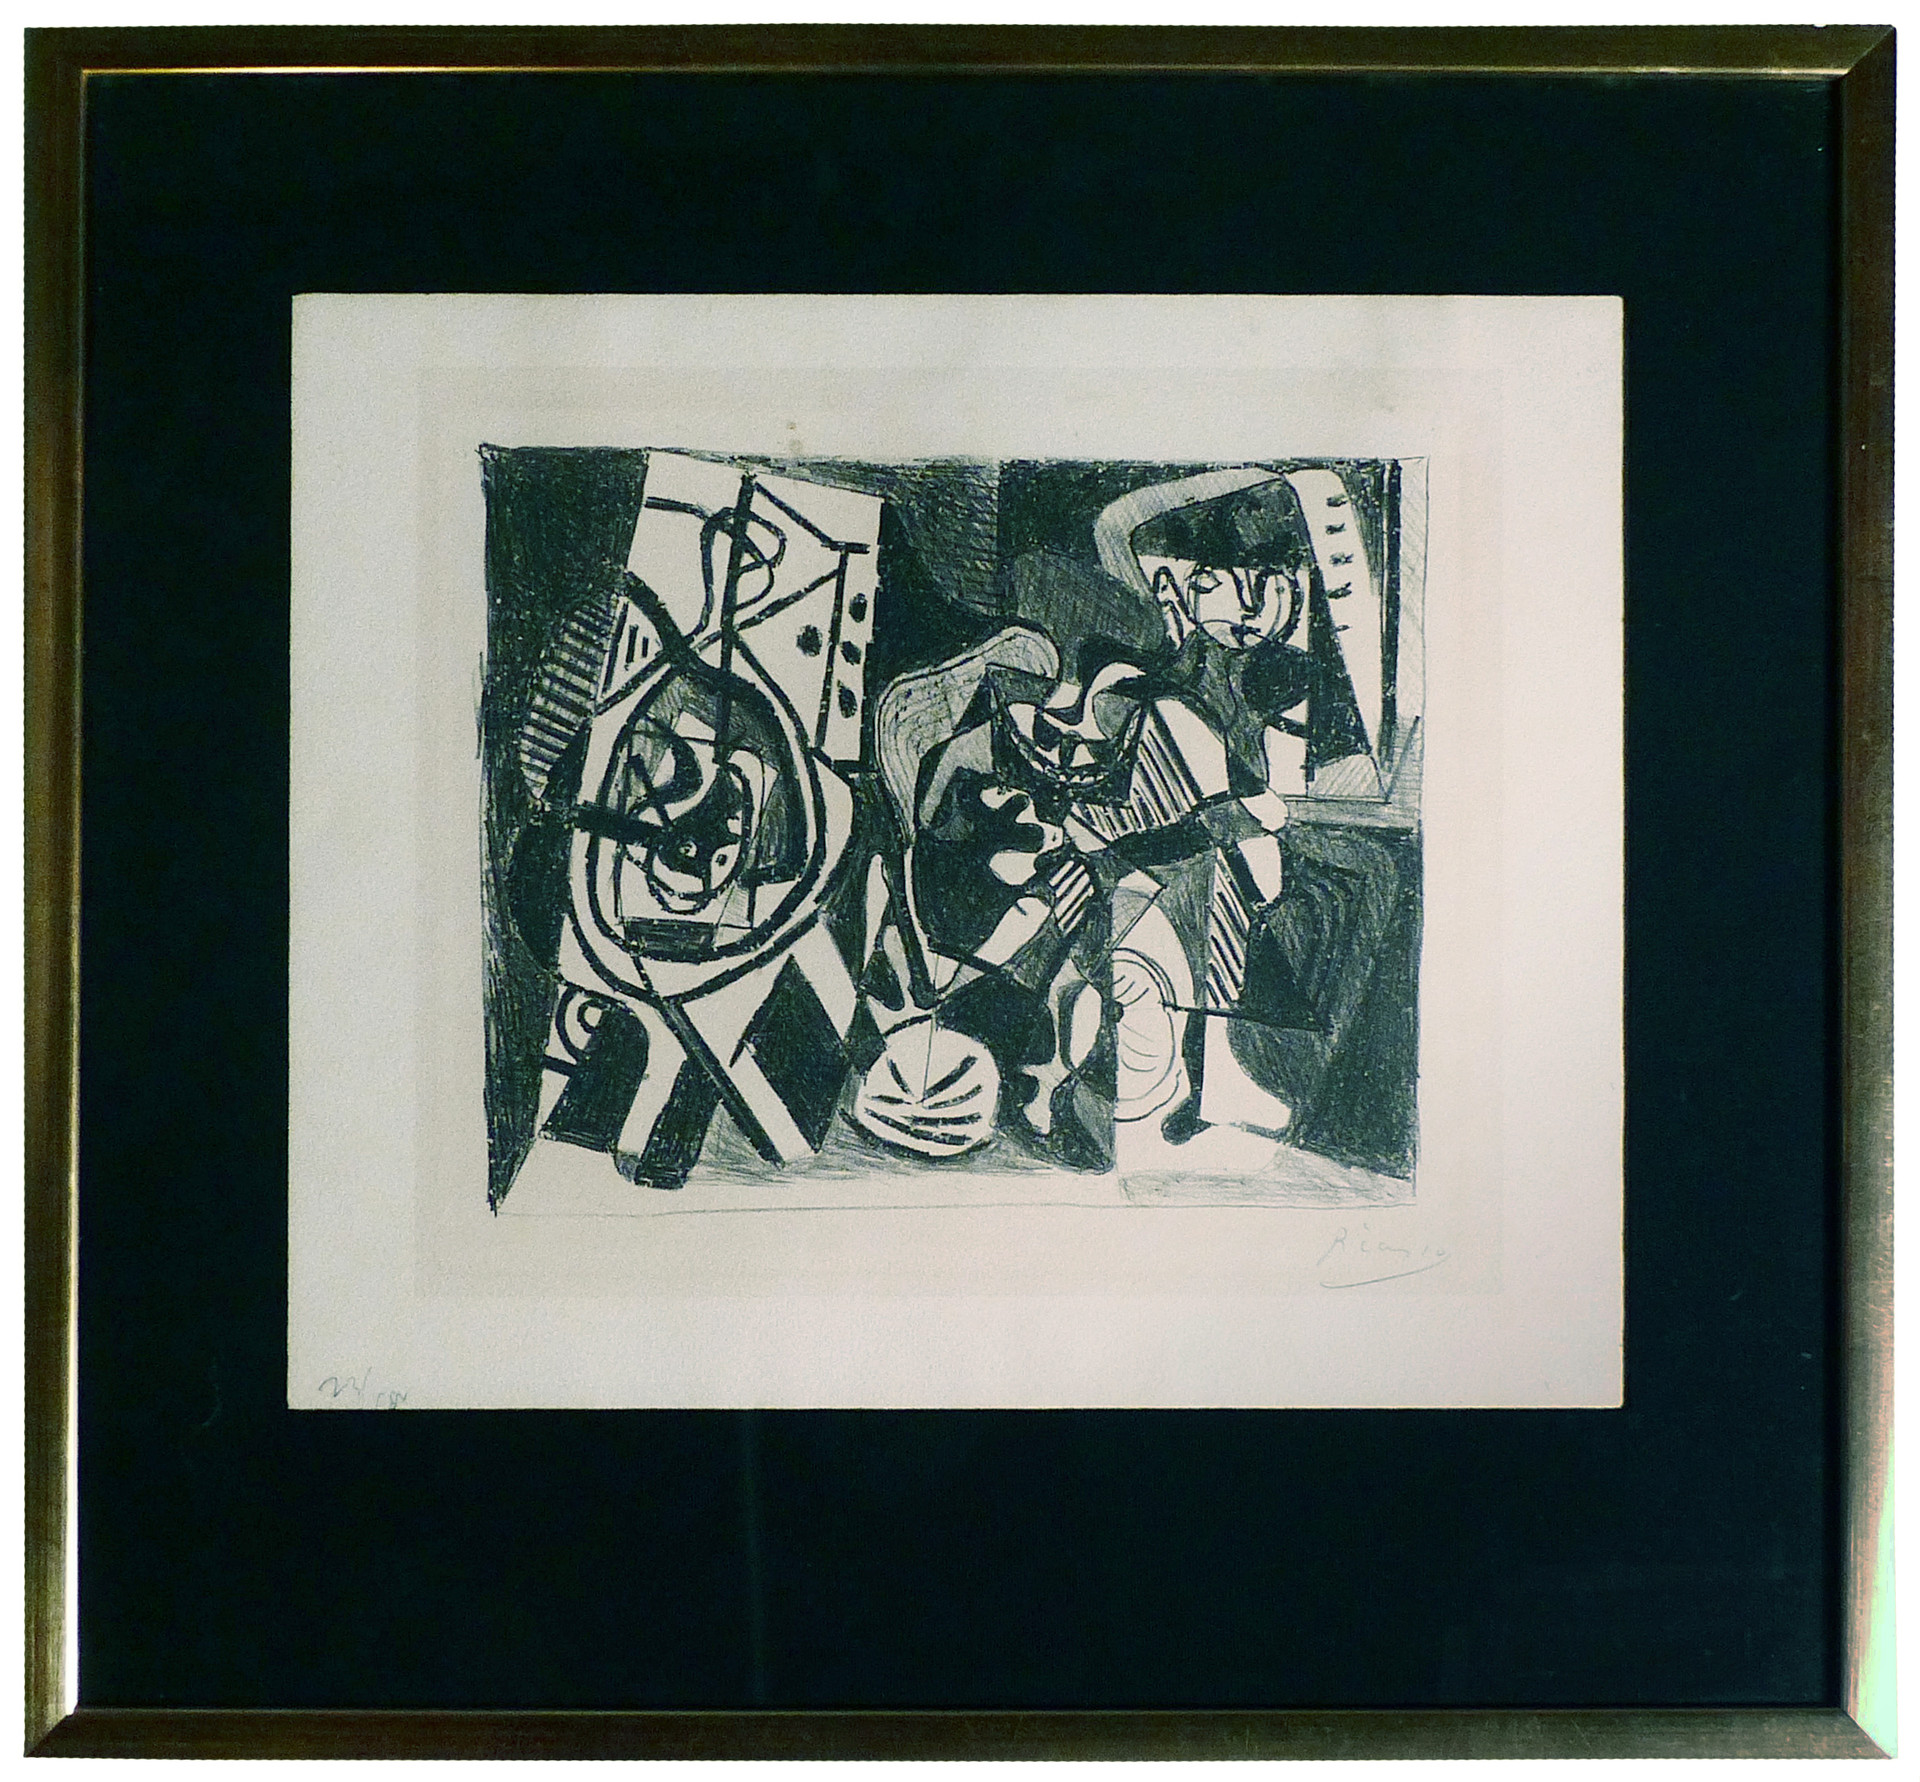 Scene d'Interieur  1926 Lithograph on tinted wove paper 8 3/4 x 10 15/16 in.  23/100 Hand-signed and numbered